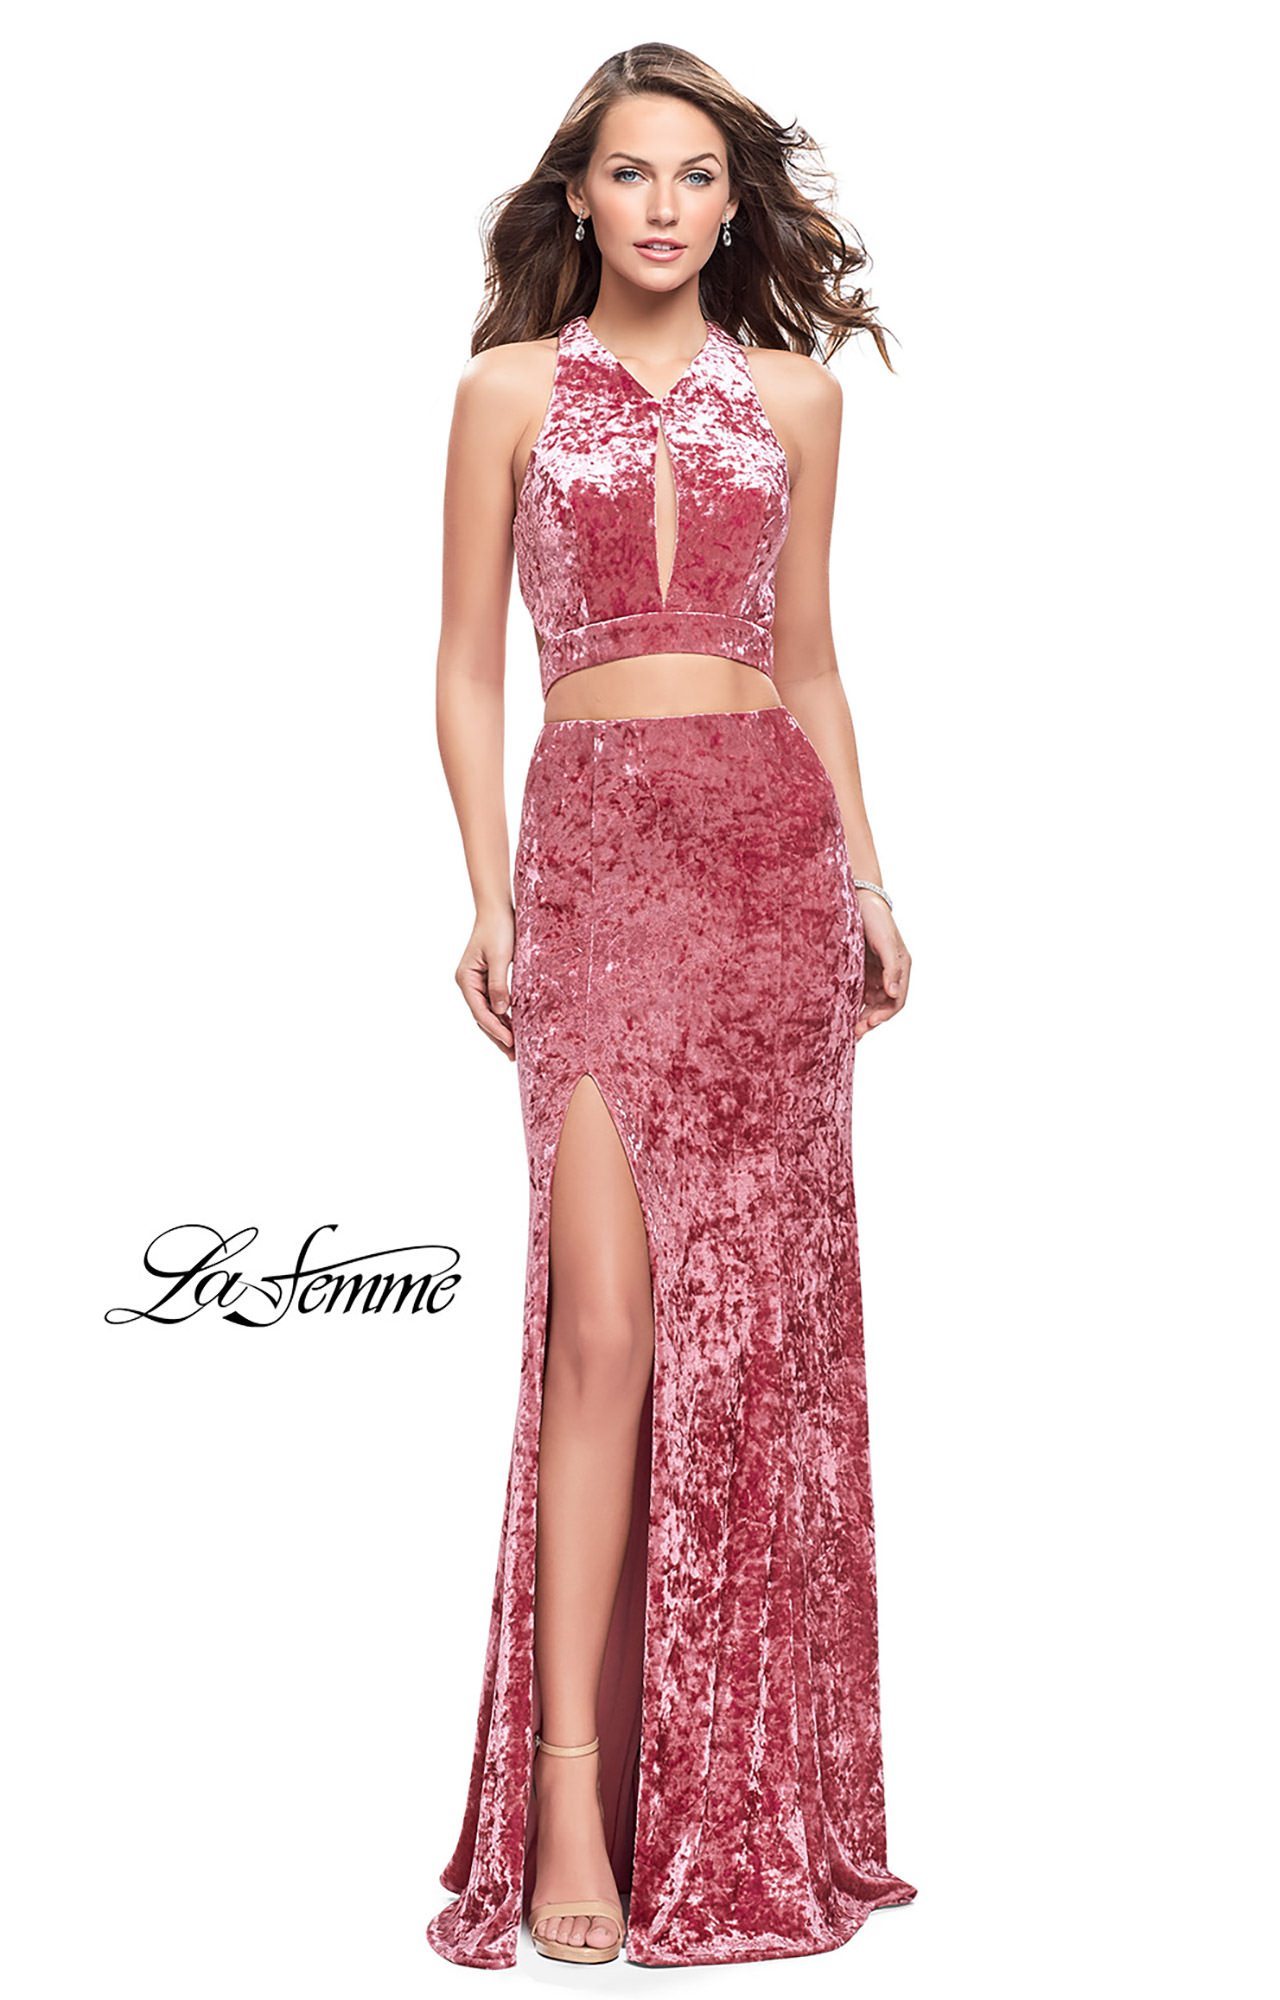 La Femme 25500 - Long Fitted Crushed Velvet 2 Piece Prom Dress